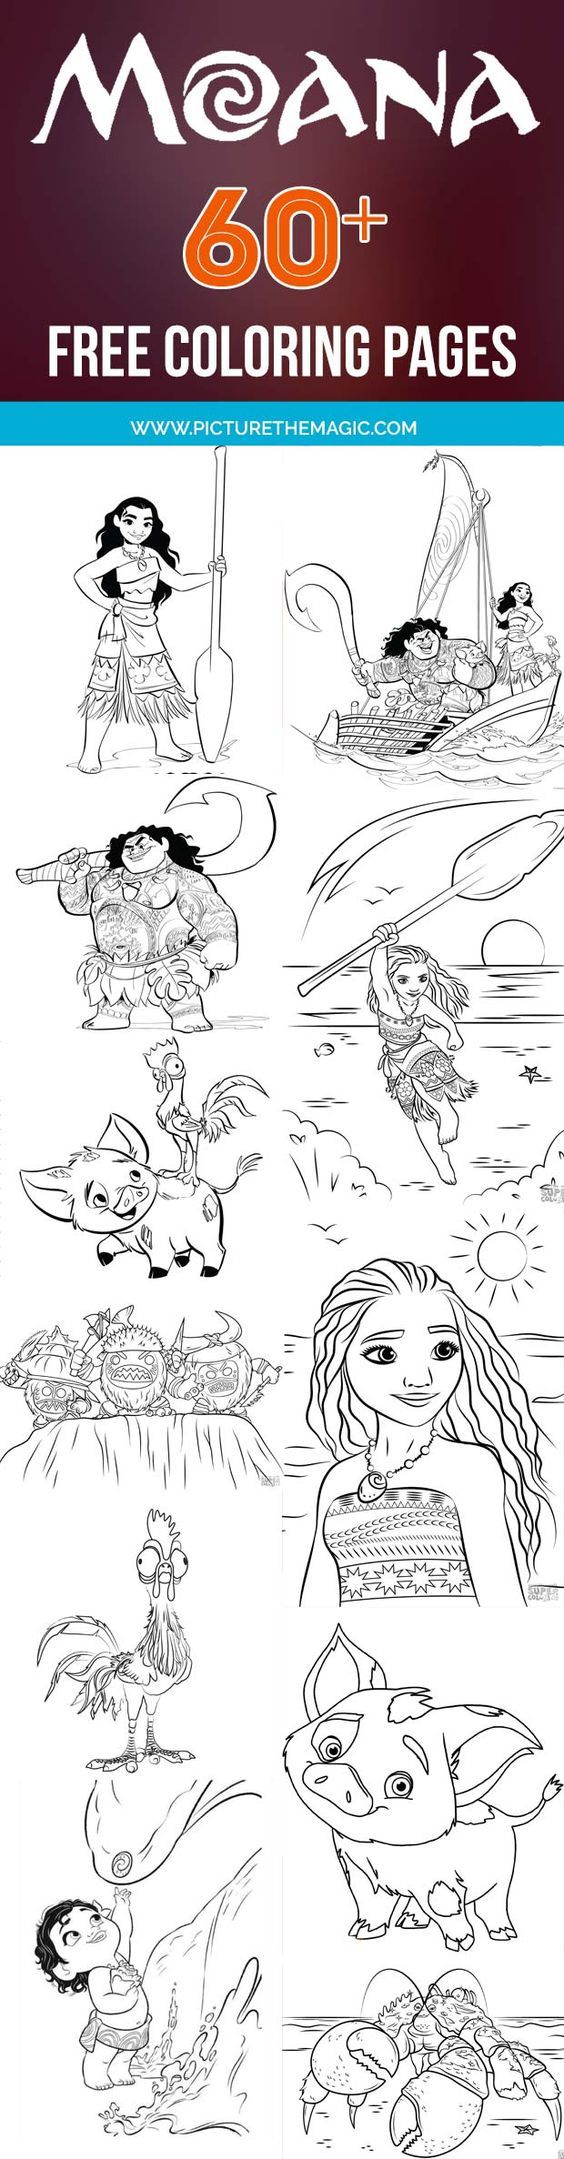 59 Moana Coloring Pages September 2017 Edition